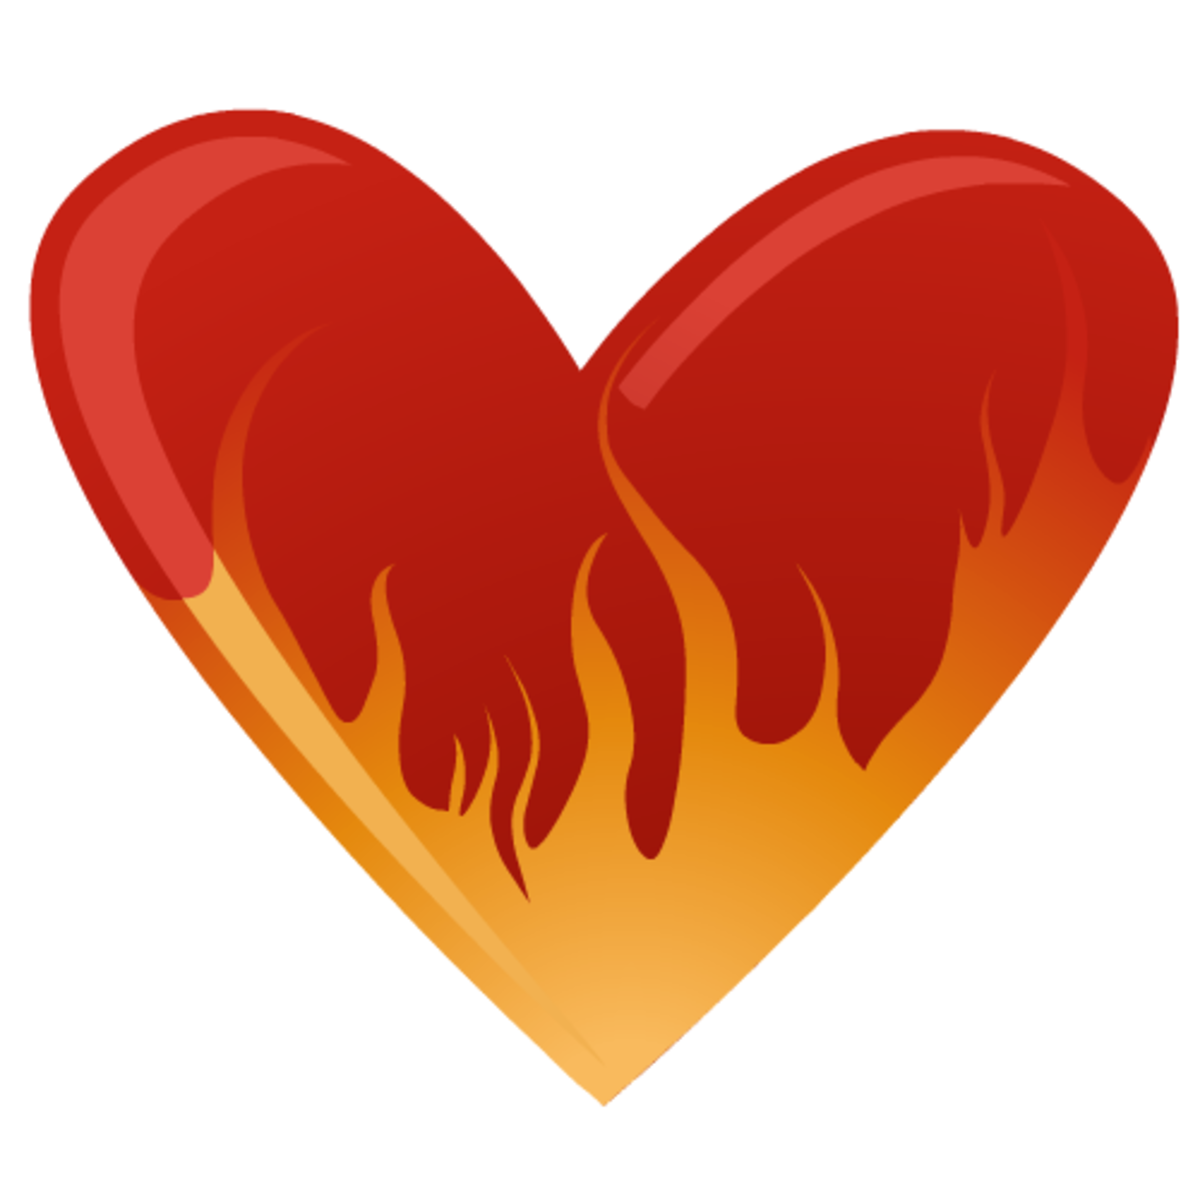 Valentine's Day heart on fire clip art